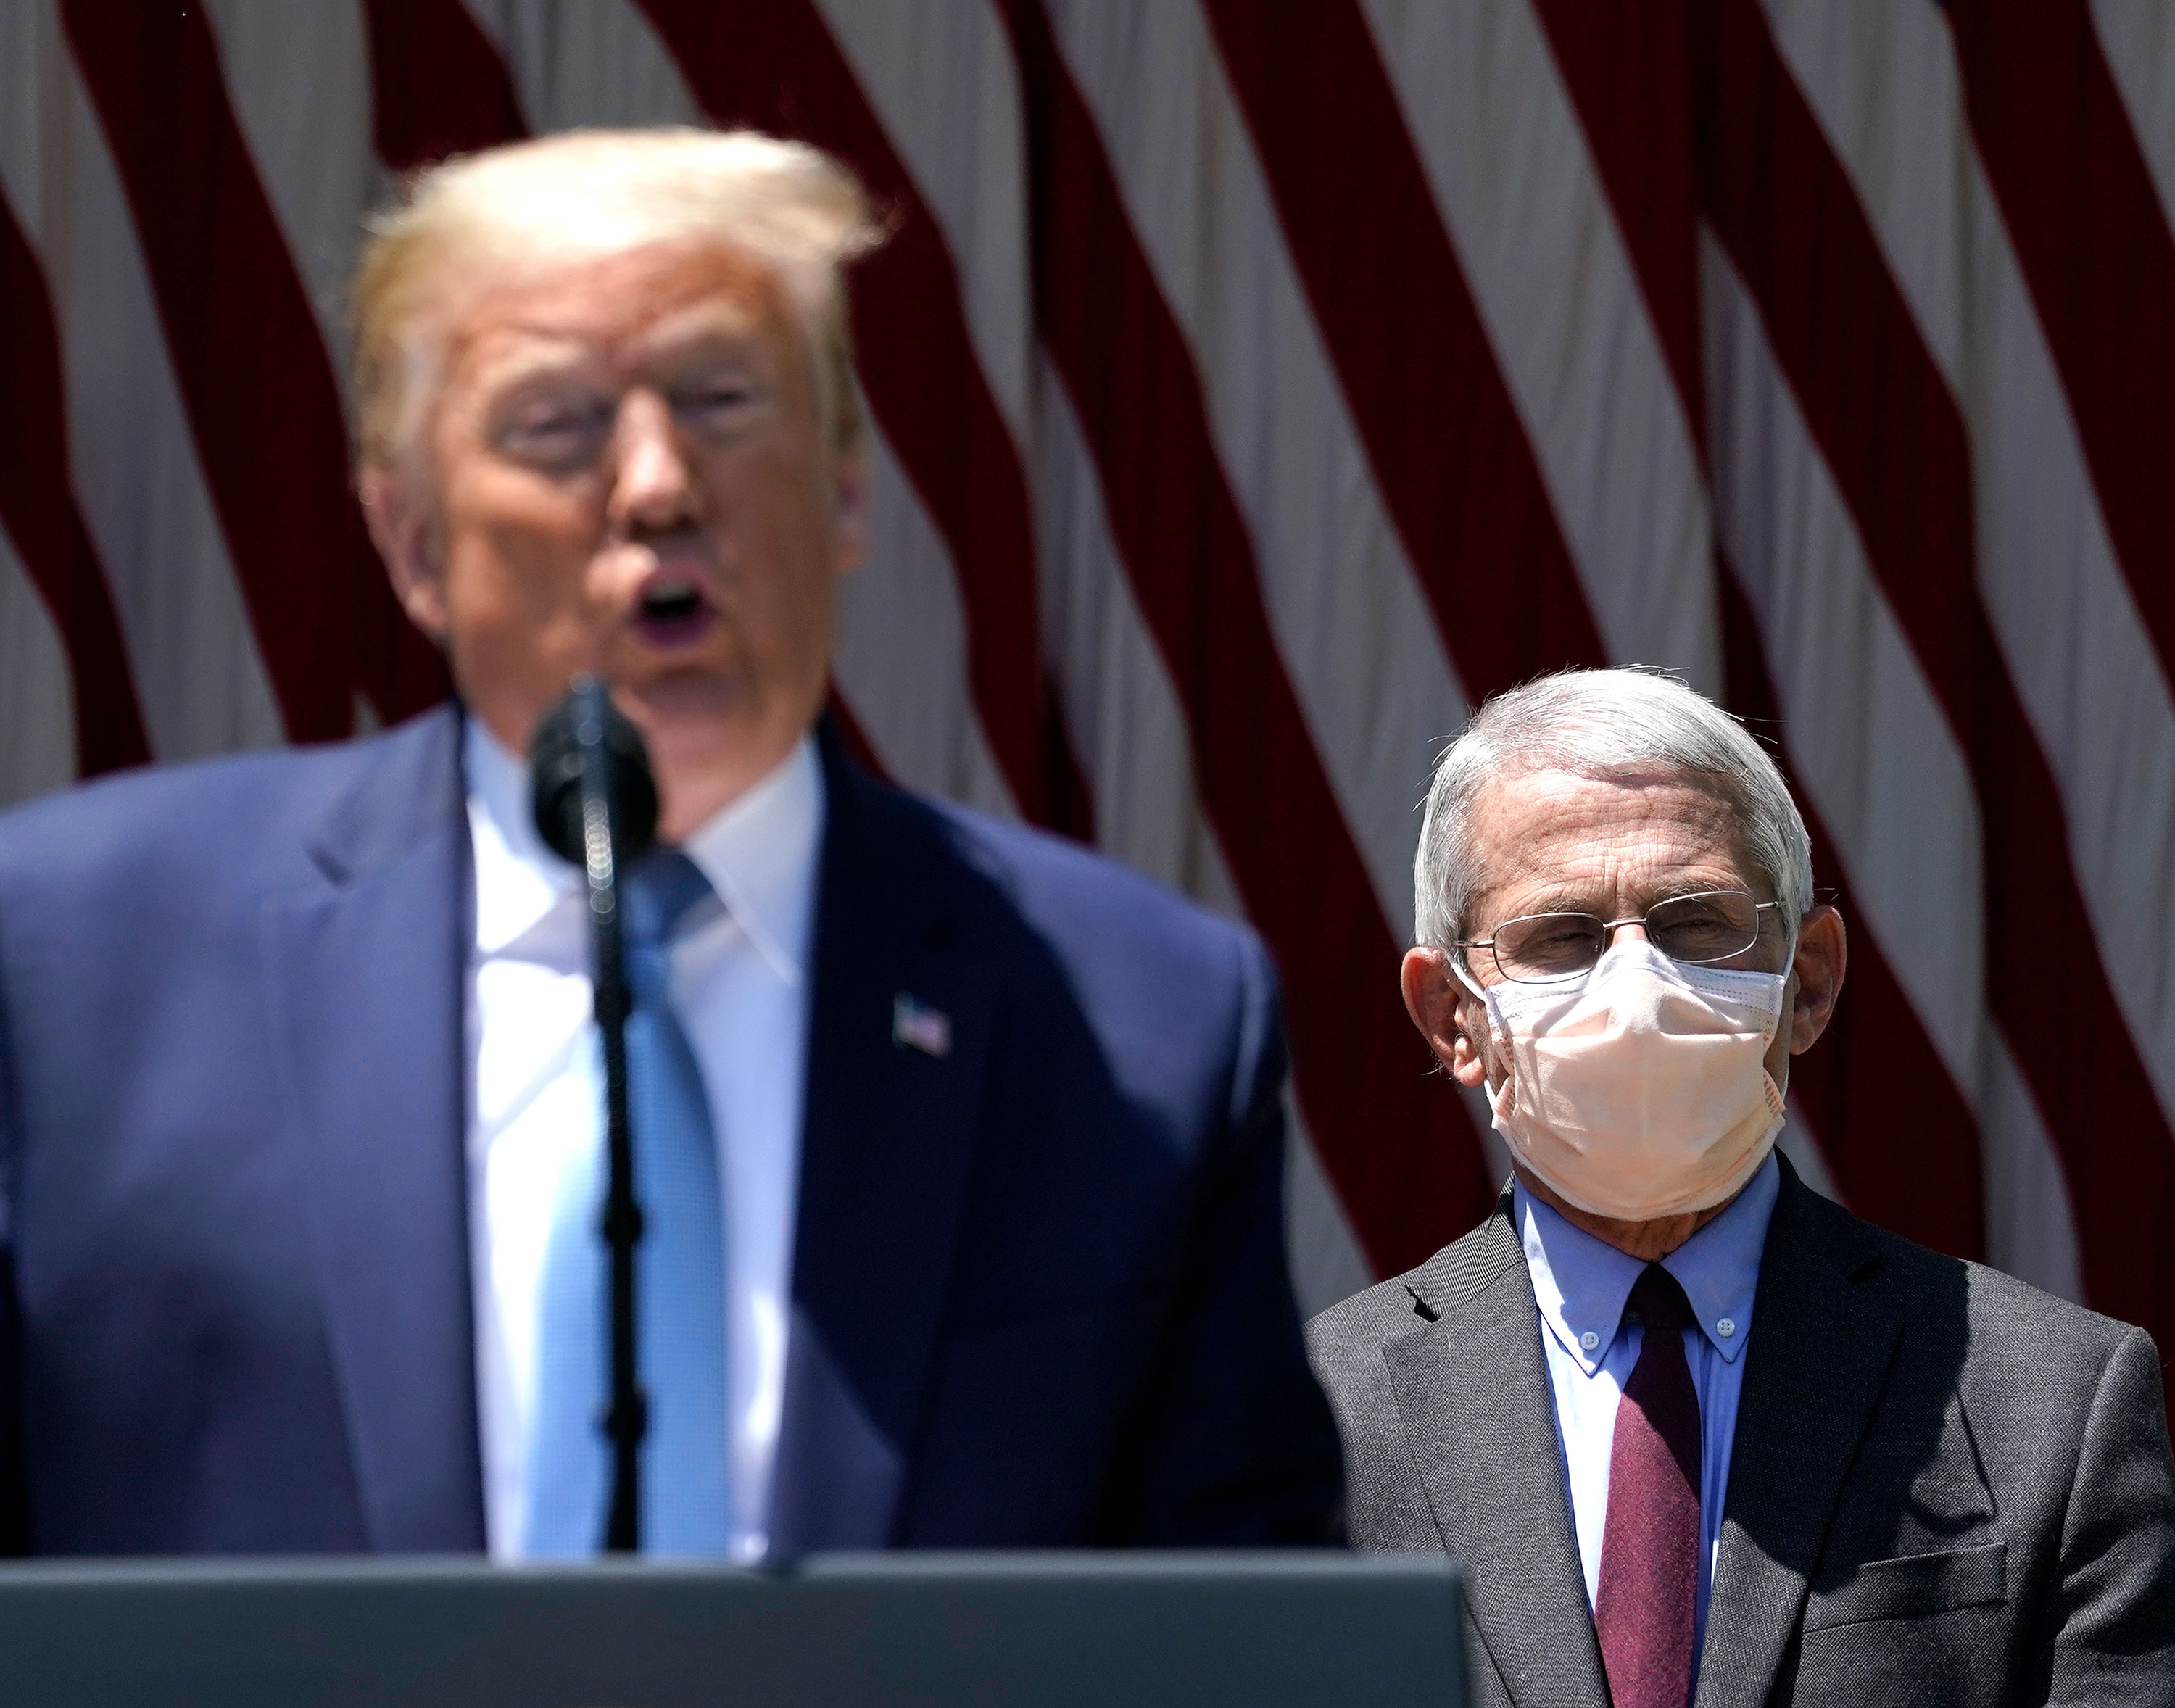 Dr. Anthony Fauci stands behind President Donald Trump at a press conference in the Rose Garden of the White House on May 15.